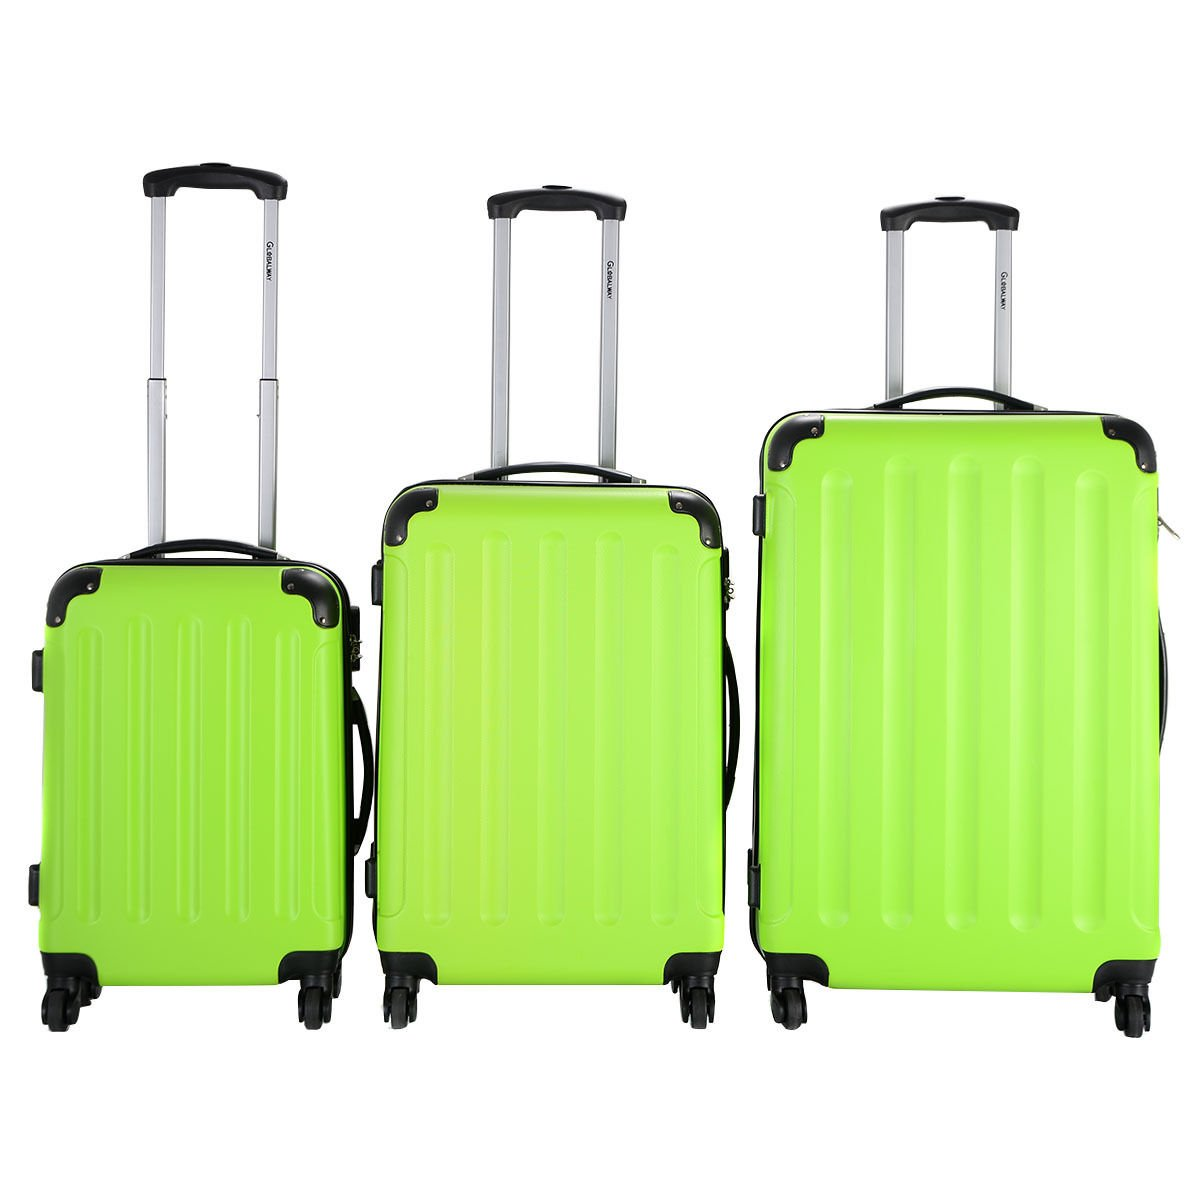 3 Pcs Luggage Travel Set Bag ABS+PC Trolley Suitcase Green by tamsun